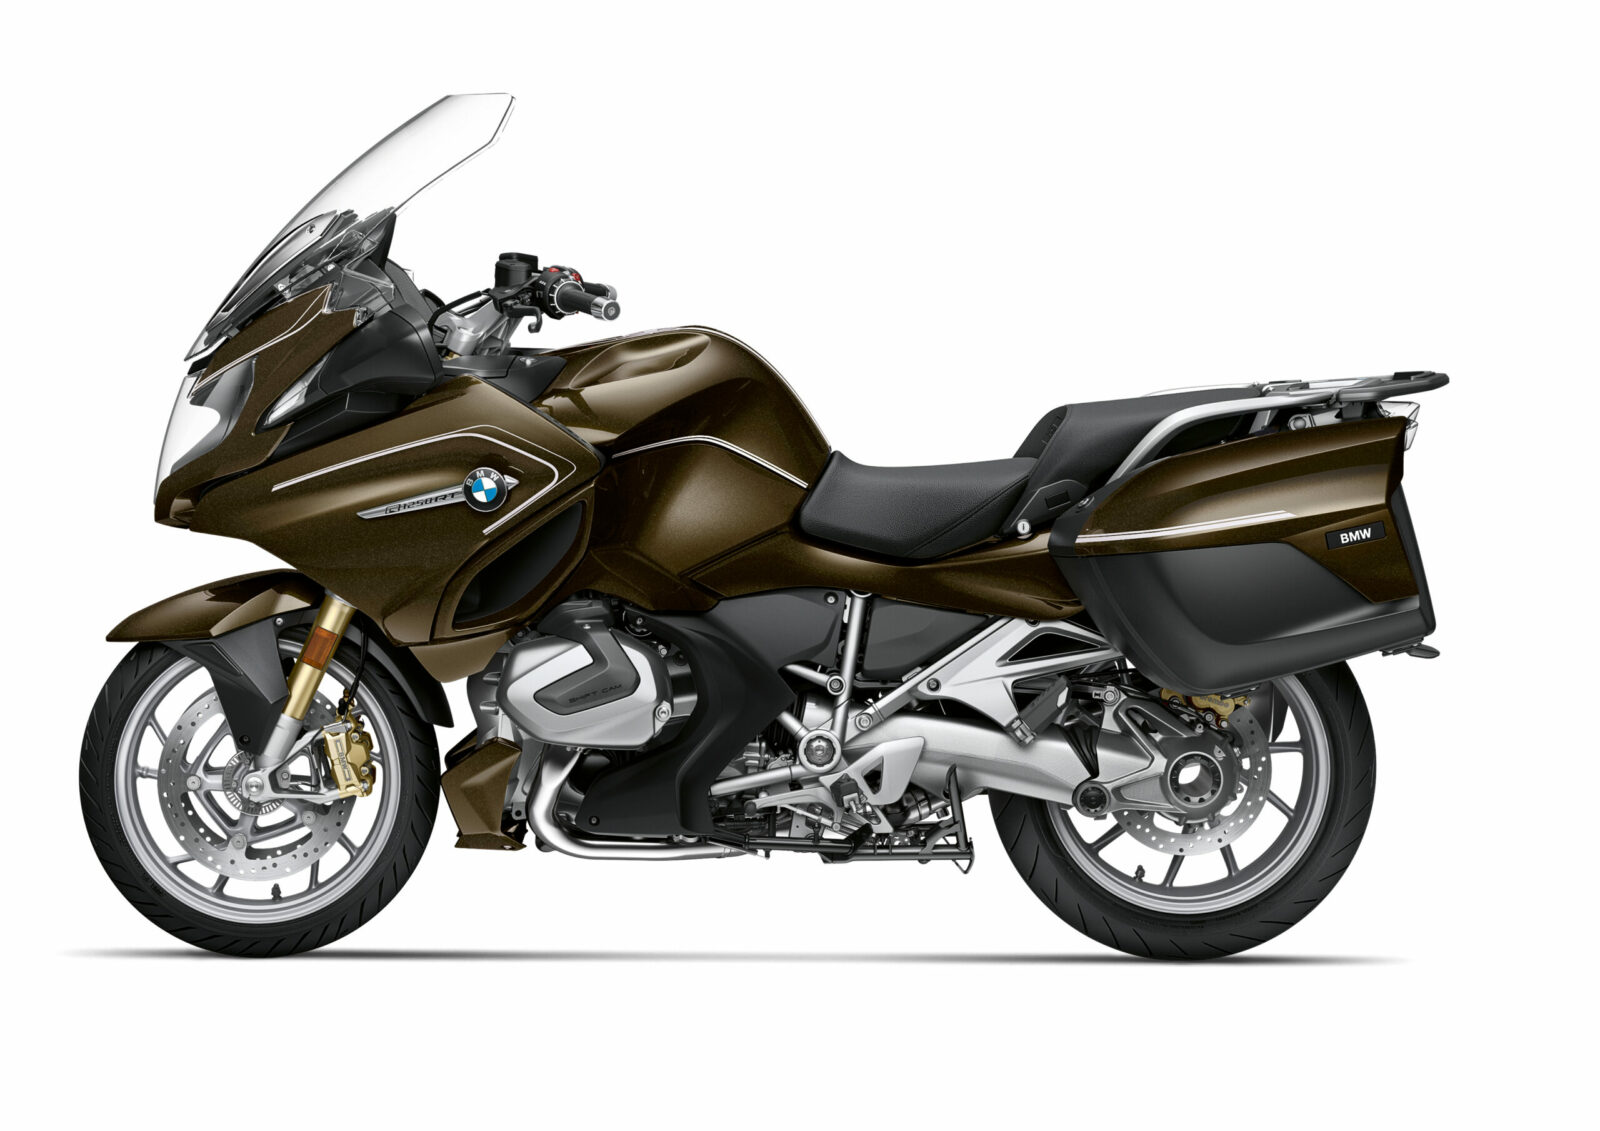 R 1250 RT Option 719 Sparkling Storm metallic